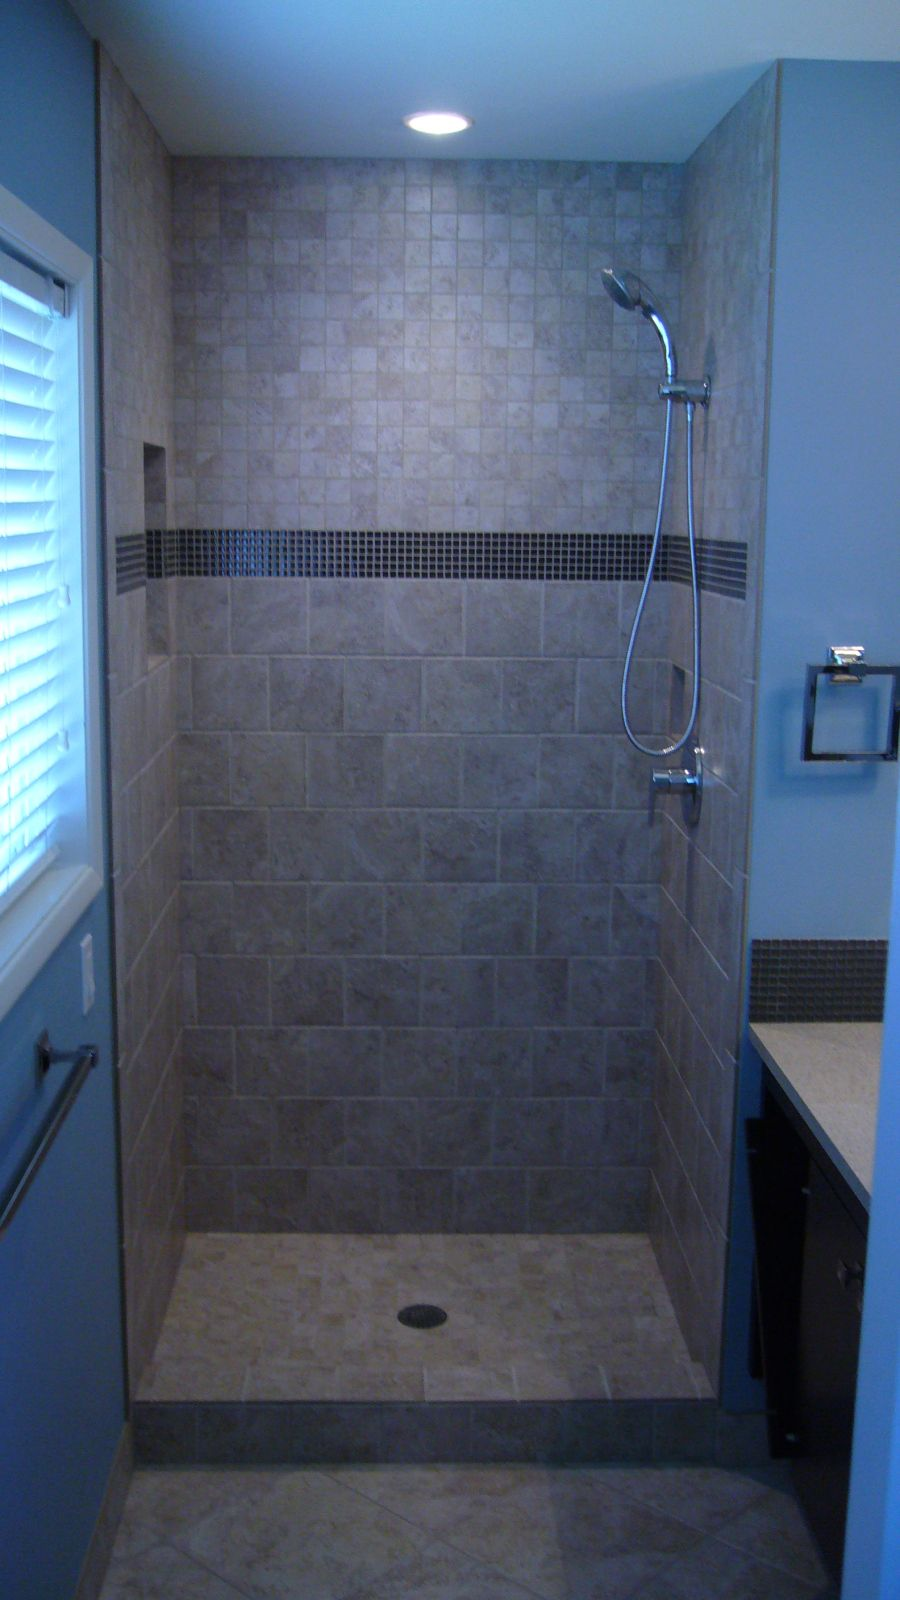 New Tiled shower stall | Building companies, Tile showers and Building